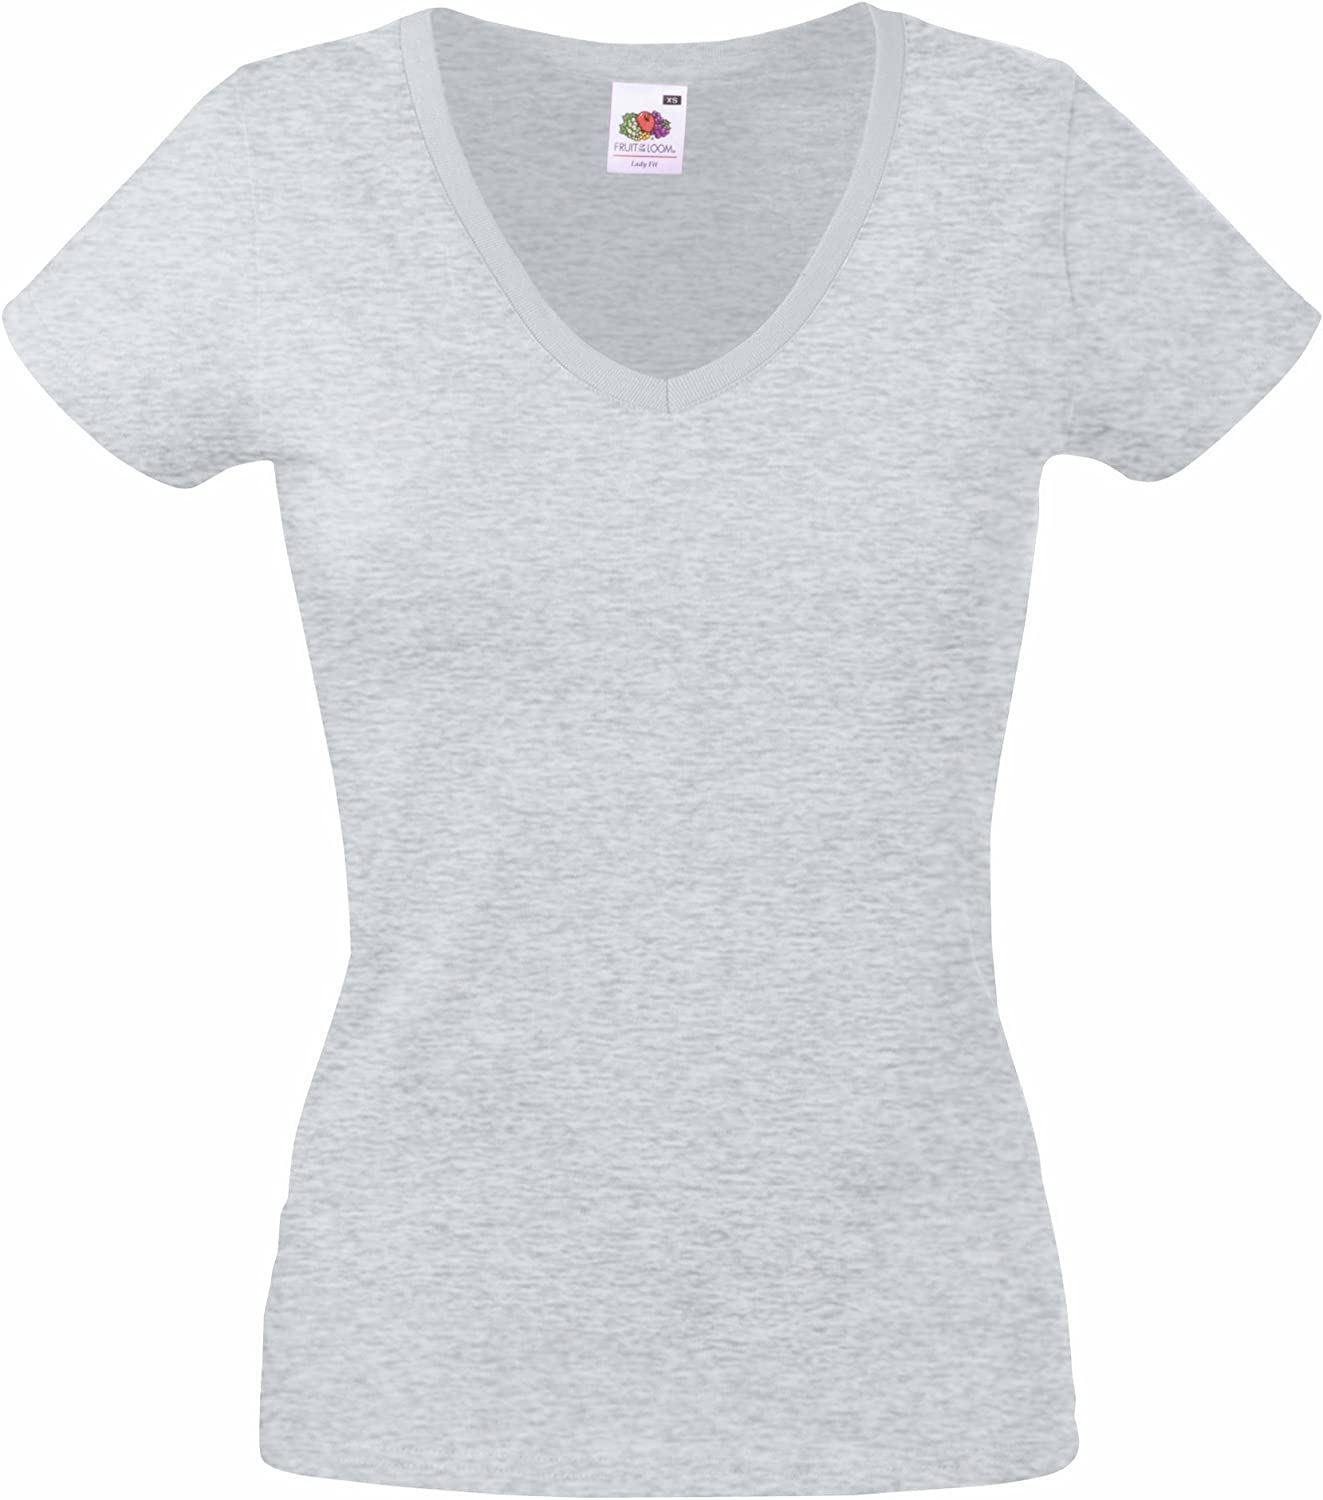 Fruit of the Loom Lady-Fit Valueweight V-Neck T-Shirt SS047